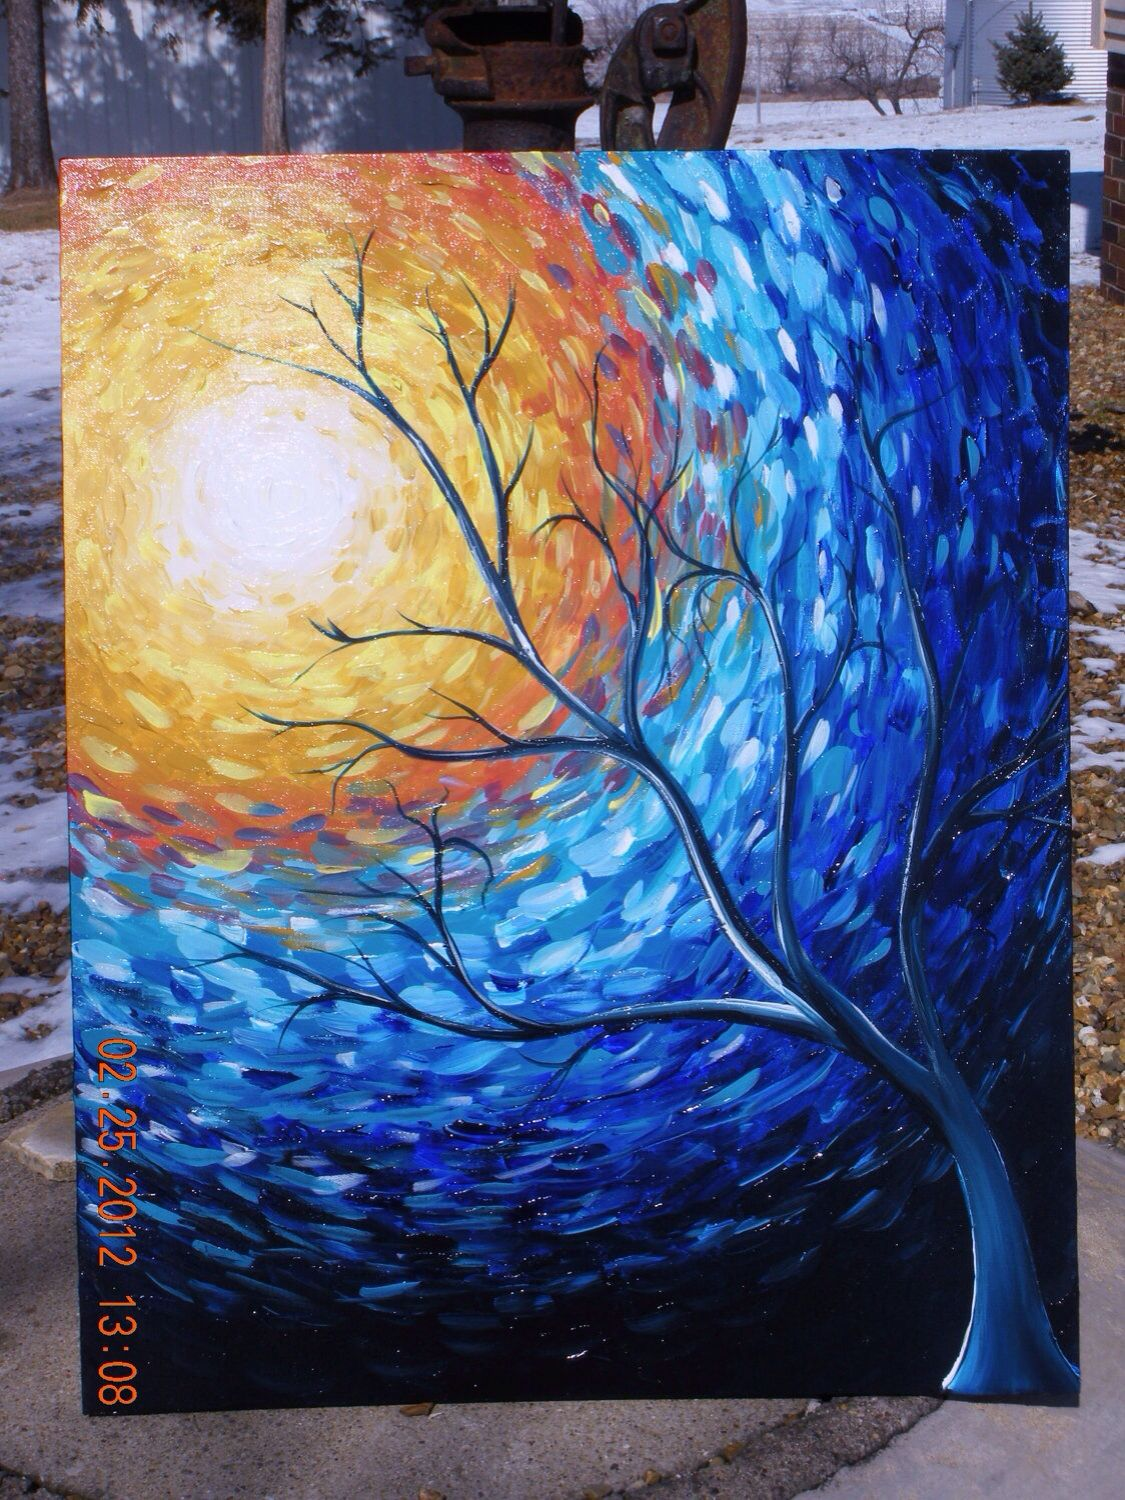 Stunning tree painting with a whimsical feel to it